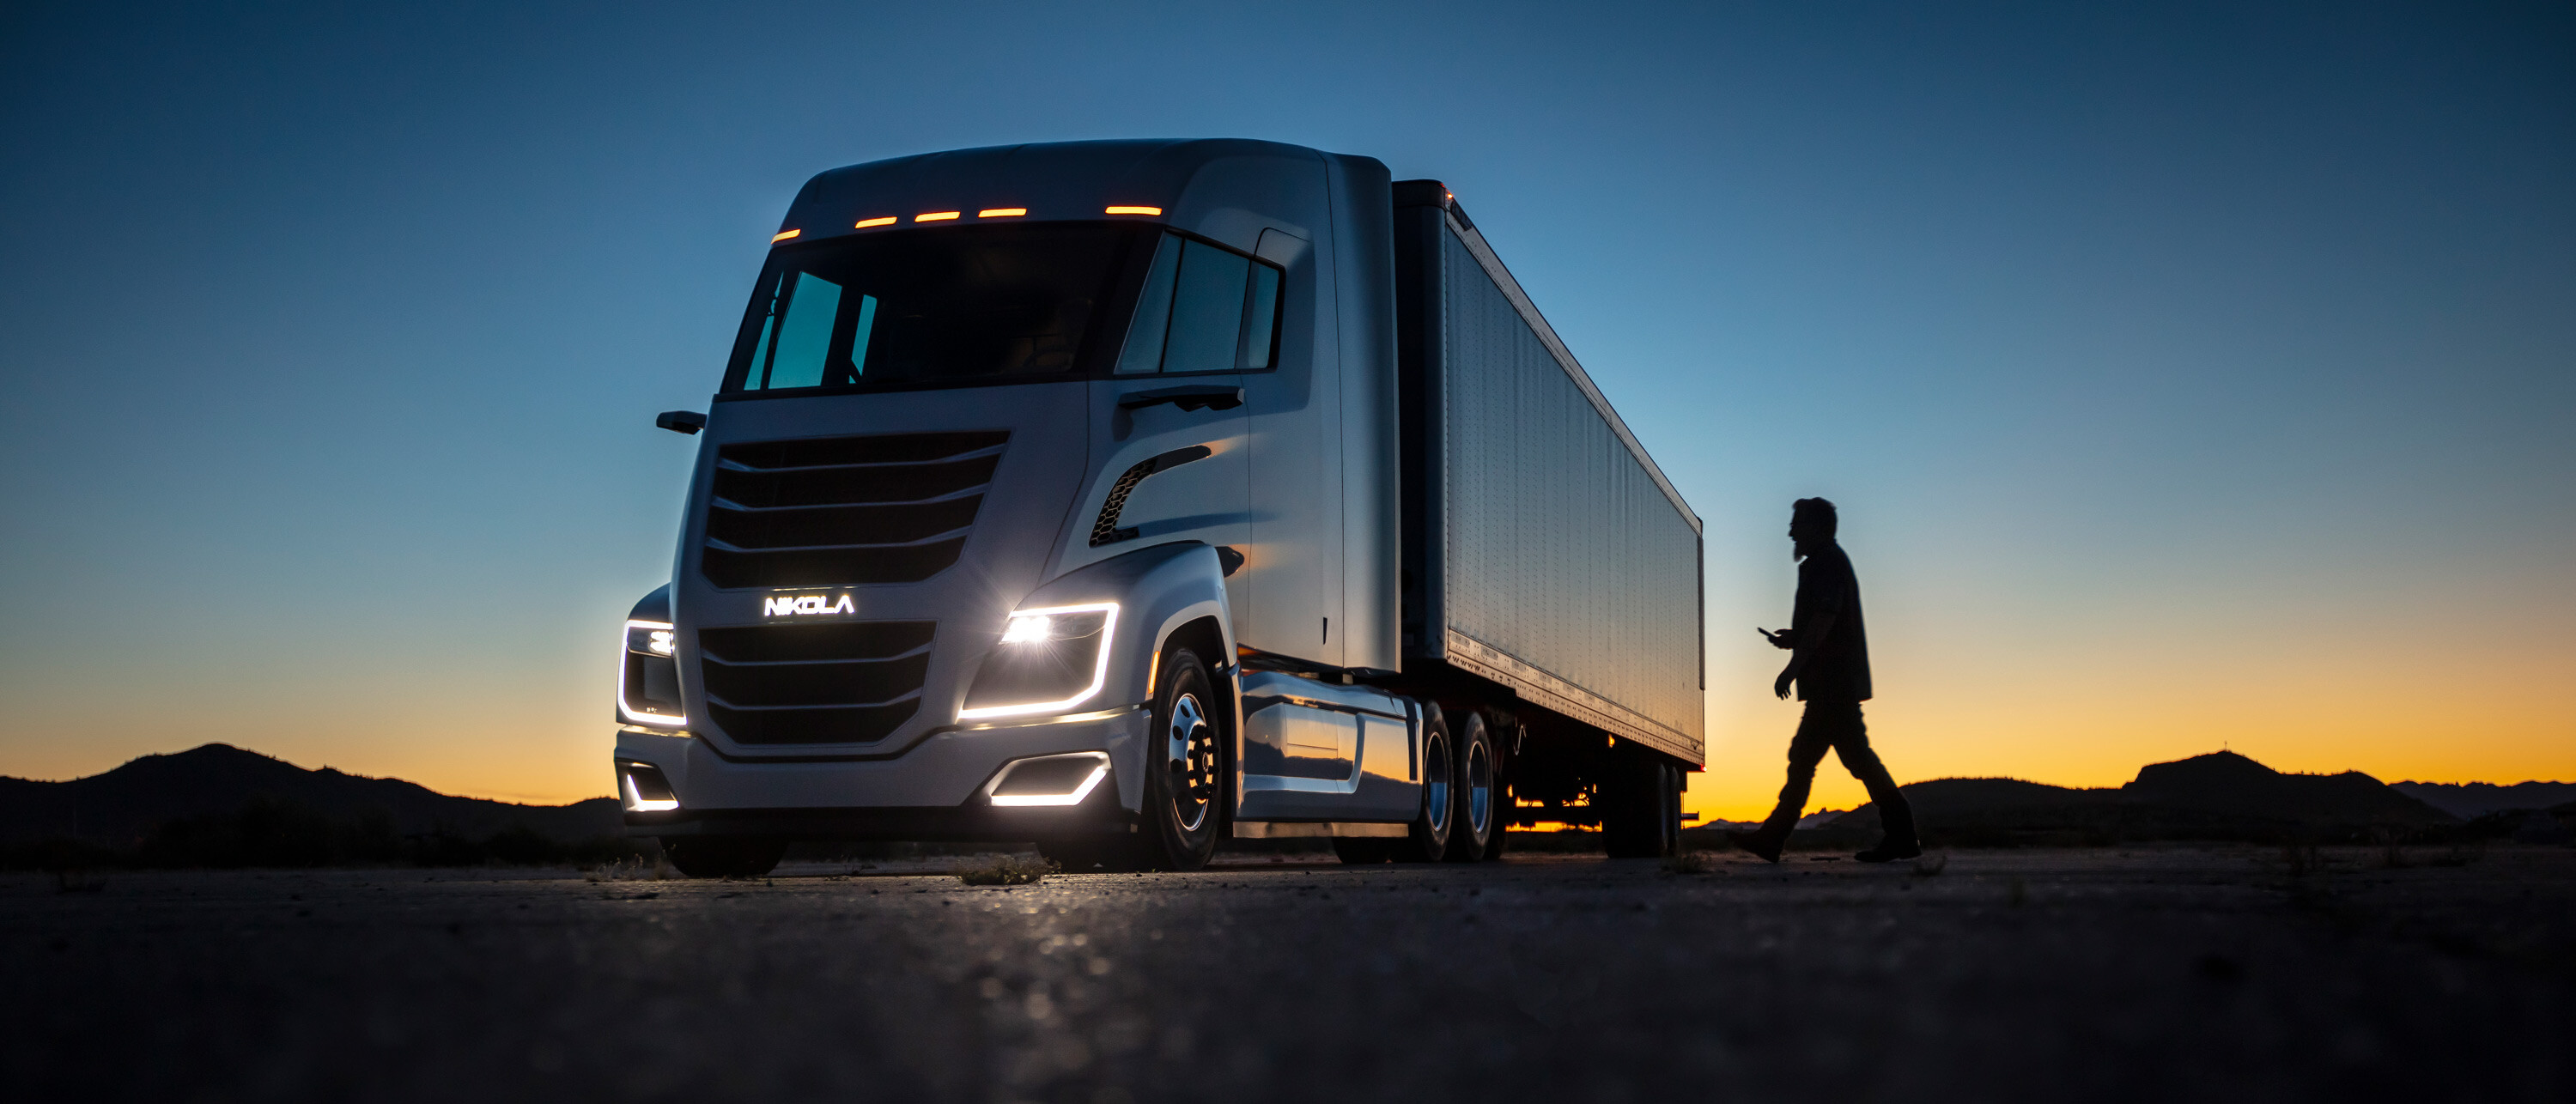 Nikola says its legal woes are over. But now it's dogged by parts shortages